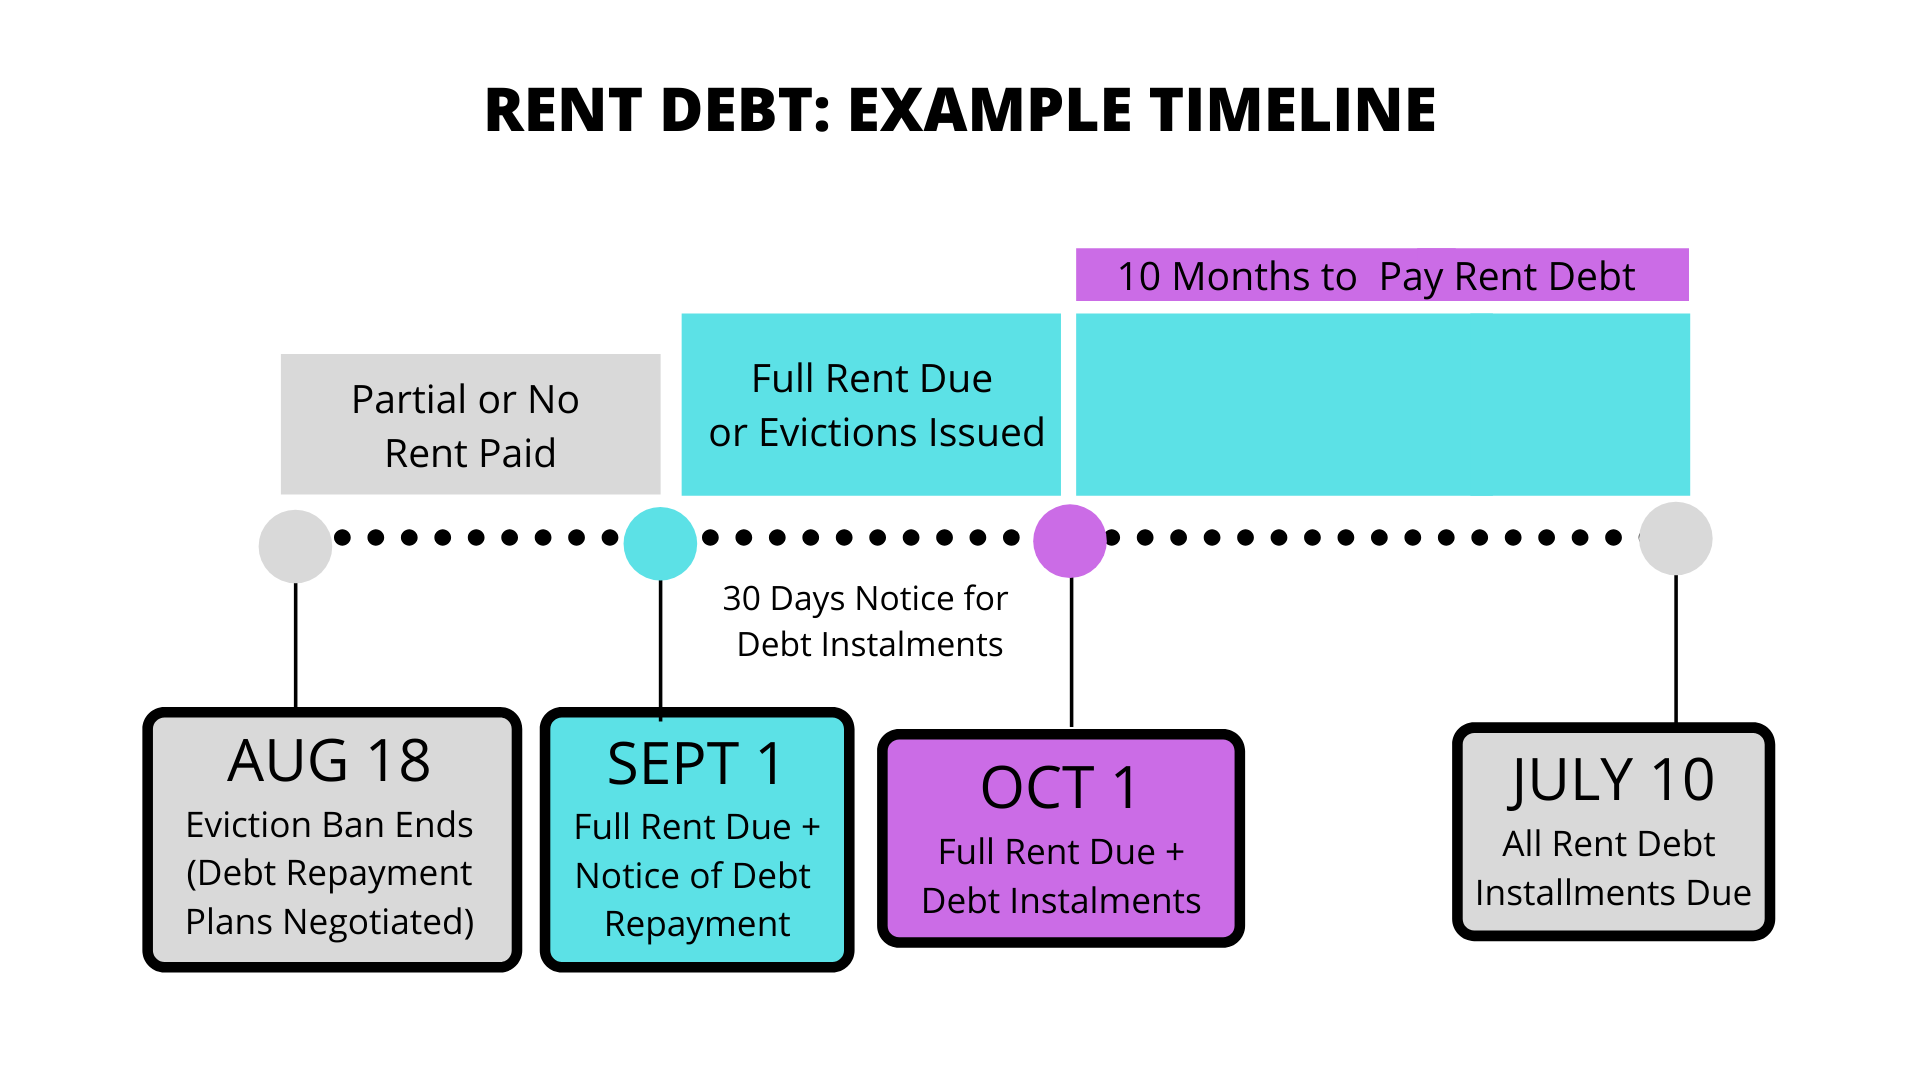 Timeline graph showing an example of how rent debt increases total rent required by renters. August 18th, Eviction ban ends and debt repayment plans are negociated; September first, full rent is due plus 30-day notice of debt repayments; October first, full rent due plus first debt instalment; December first, annual rent increases are allowed to resume, added on top of full rent, and debt repayments; July 10th, 2021 all rent debt is due.